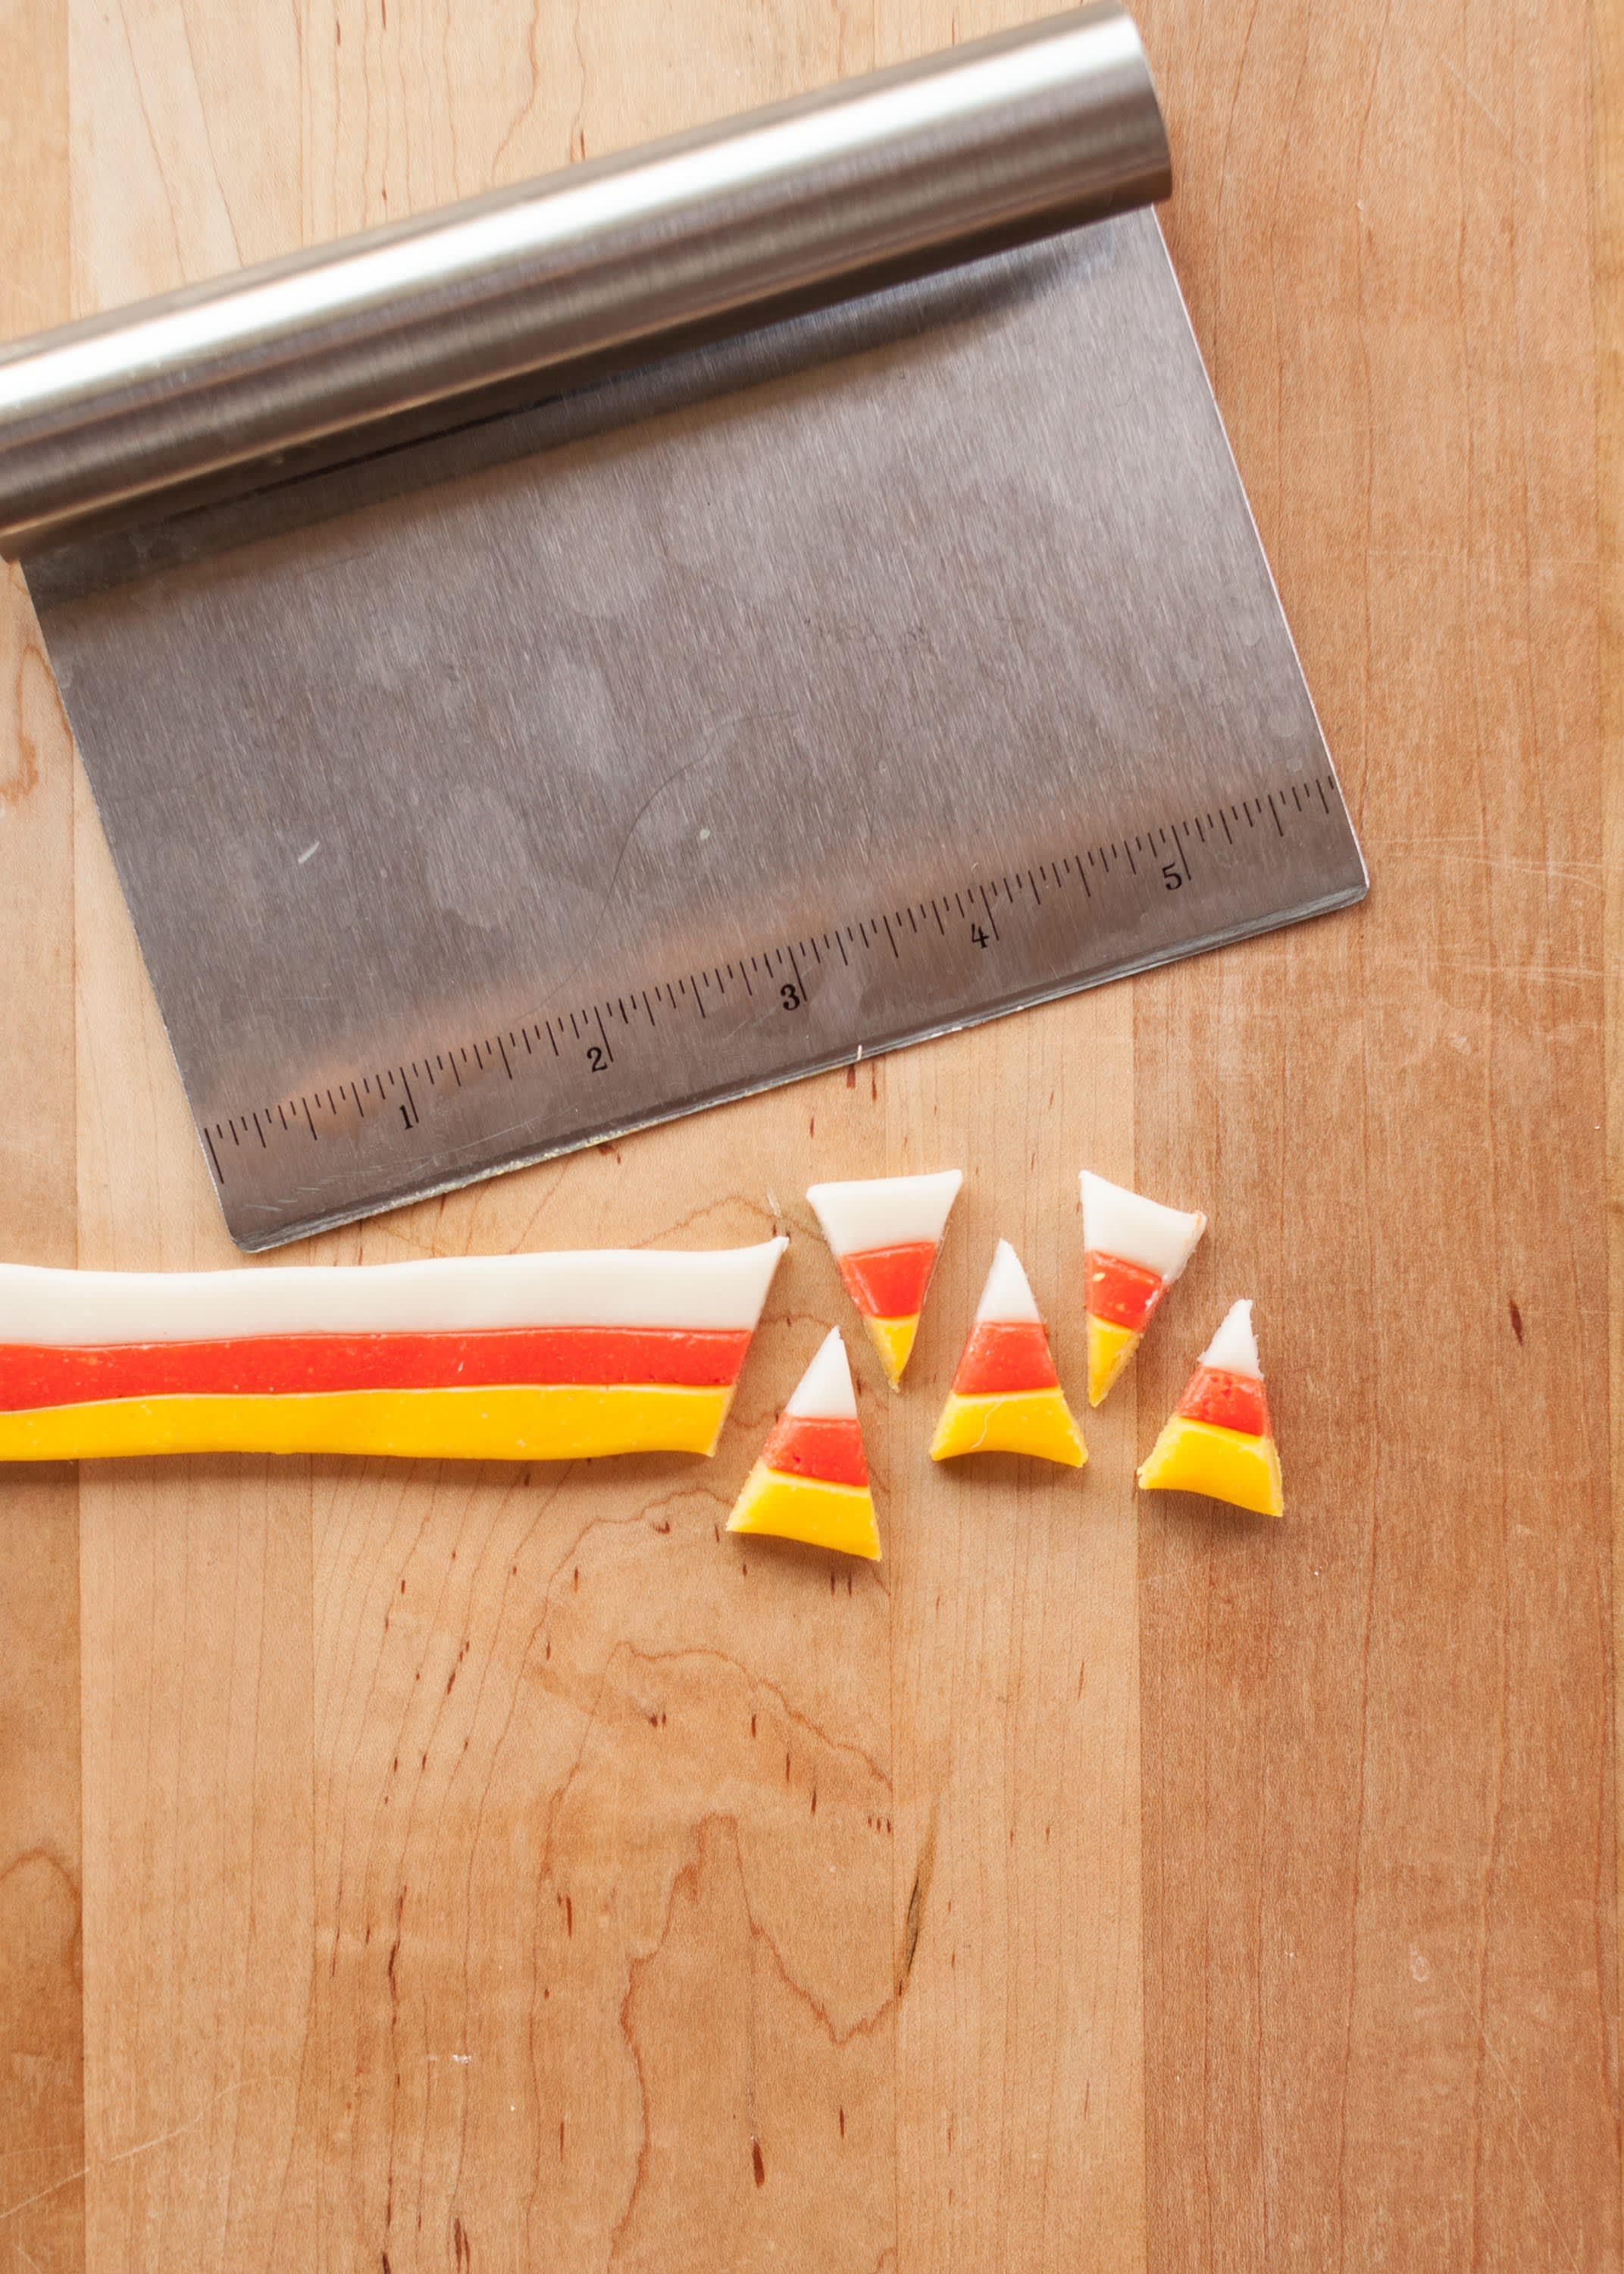 How To Make Homemade Candy Corn: gallery image 15